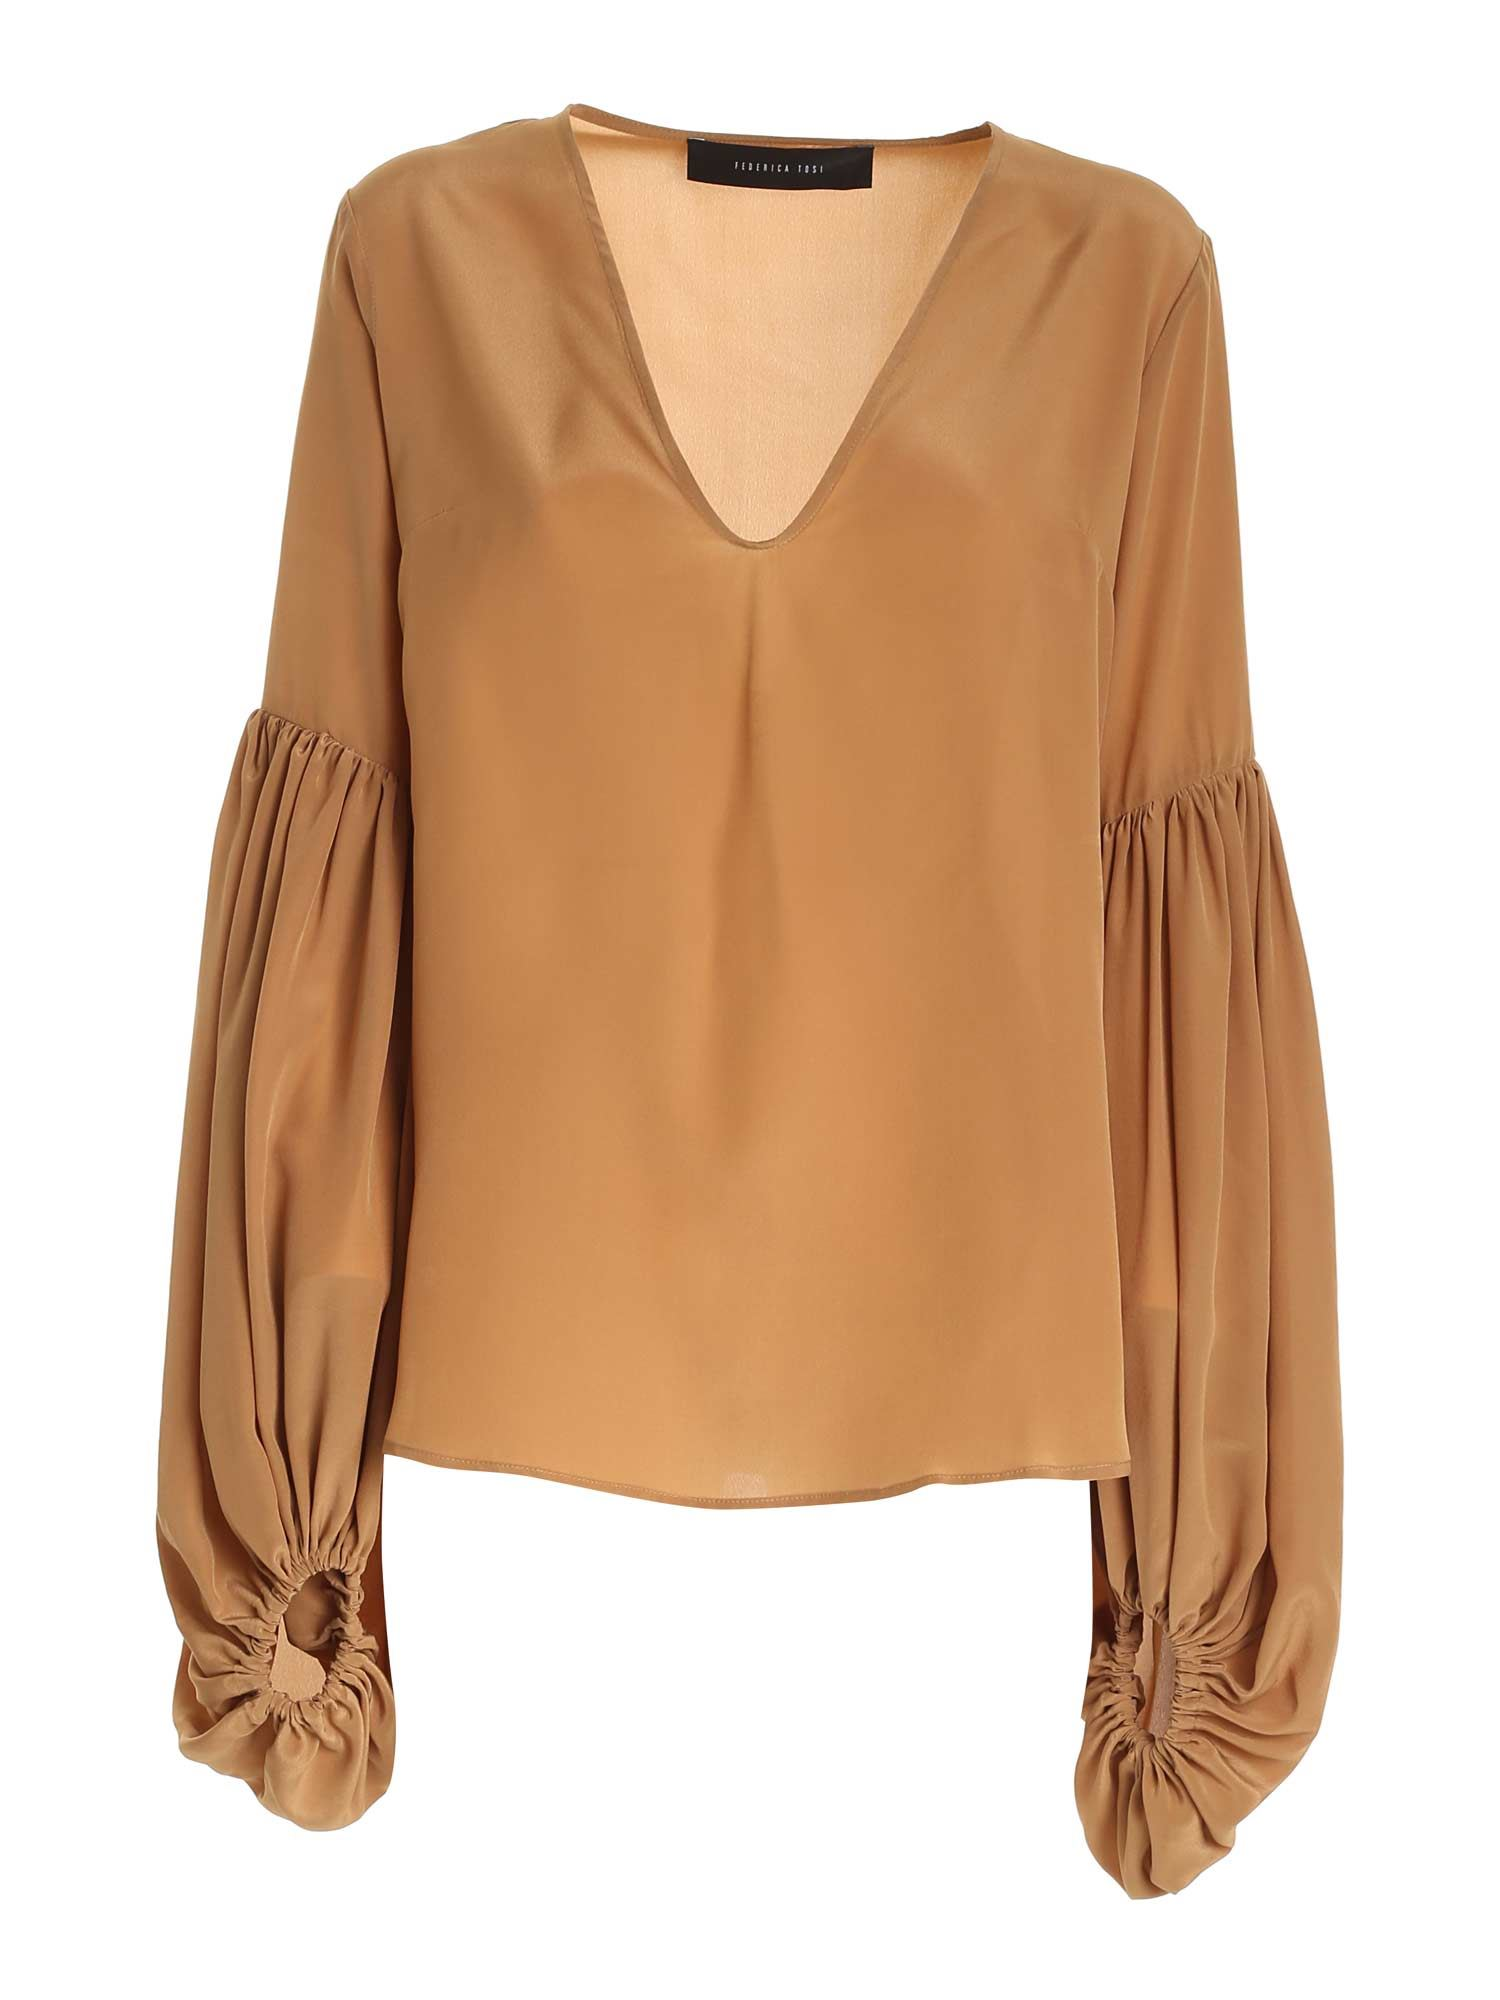 Federica Tosi ROUCHES SHIRT IN CAMEL COLOR